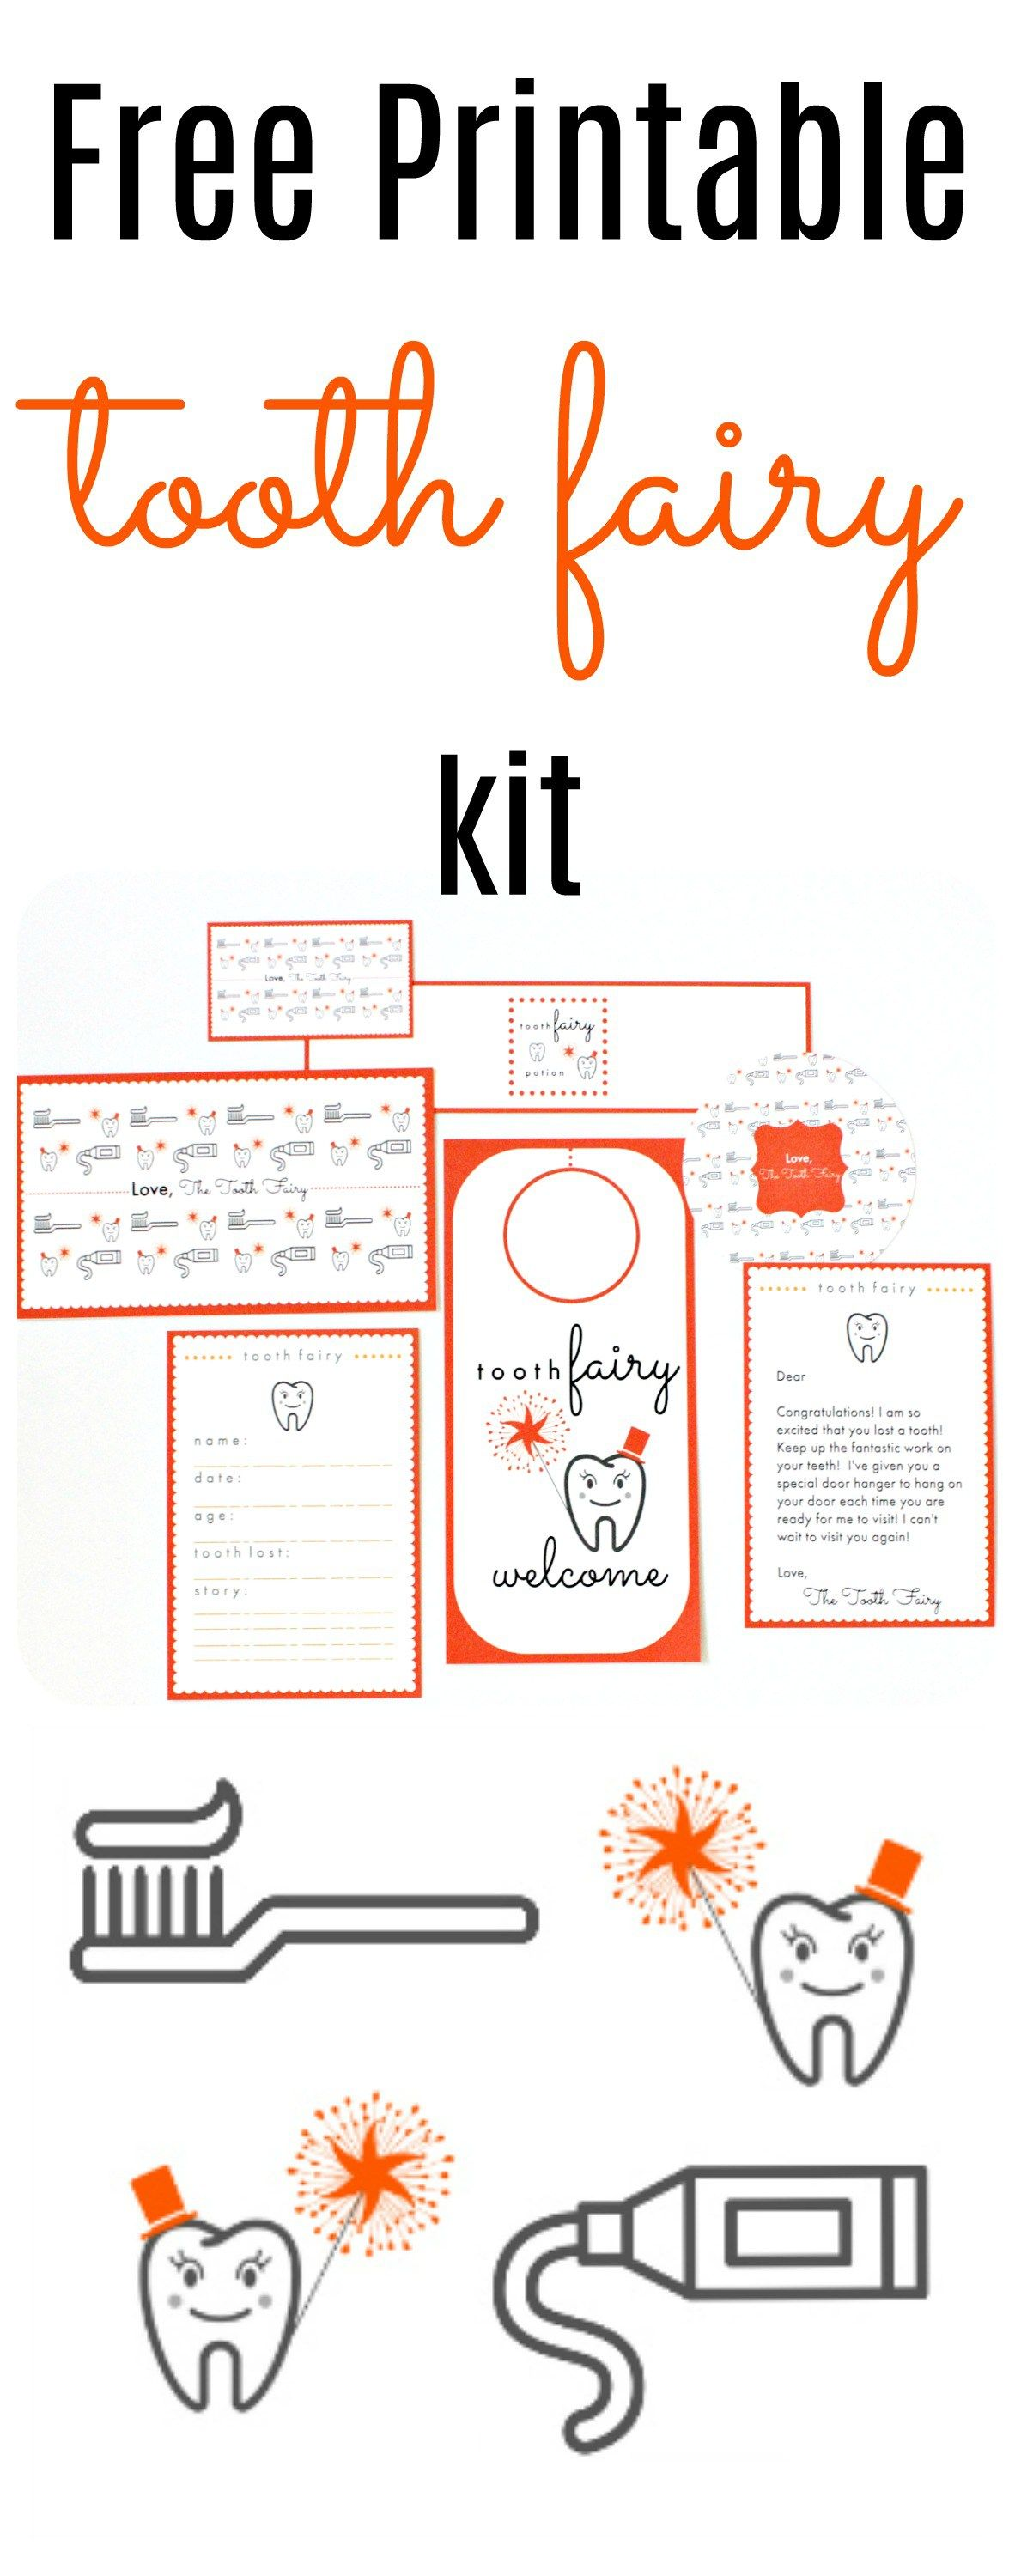 Free Printable Tooth Fairy Kit